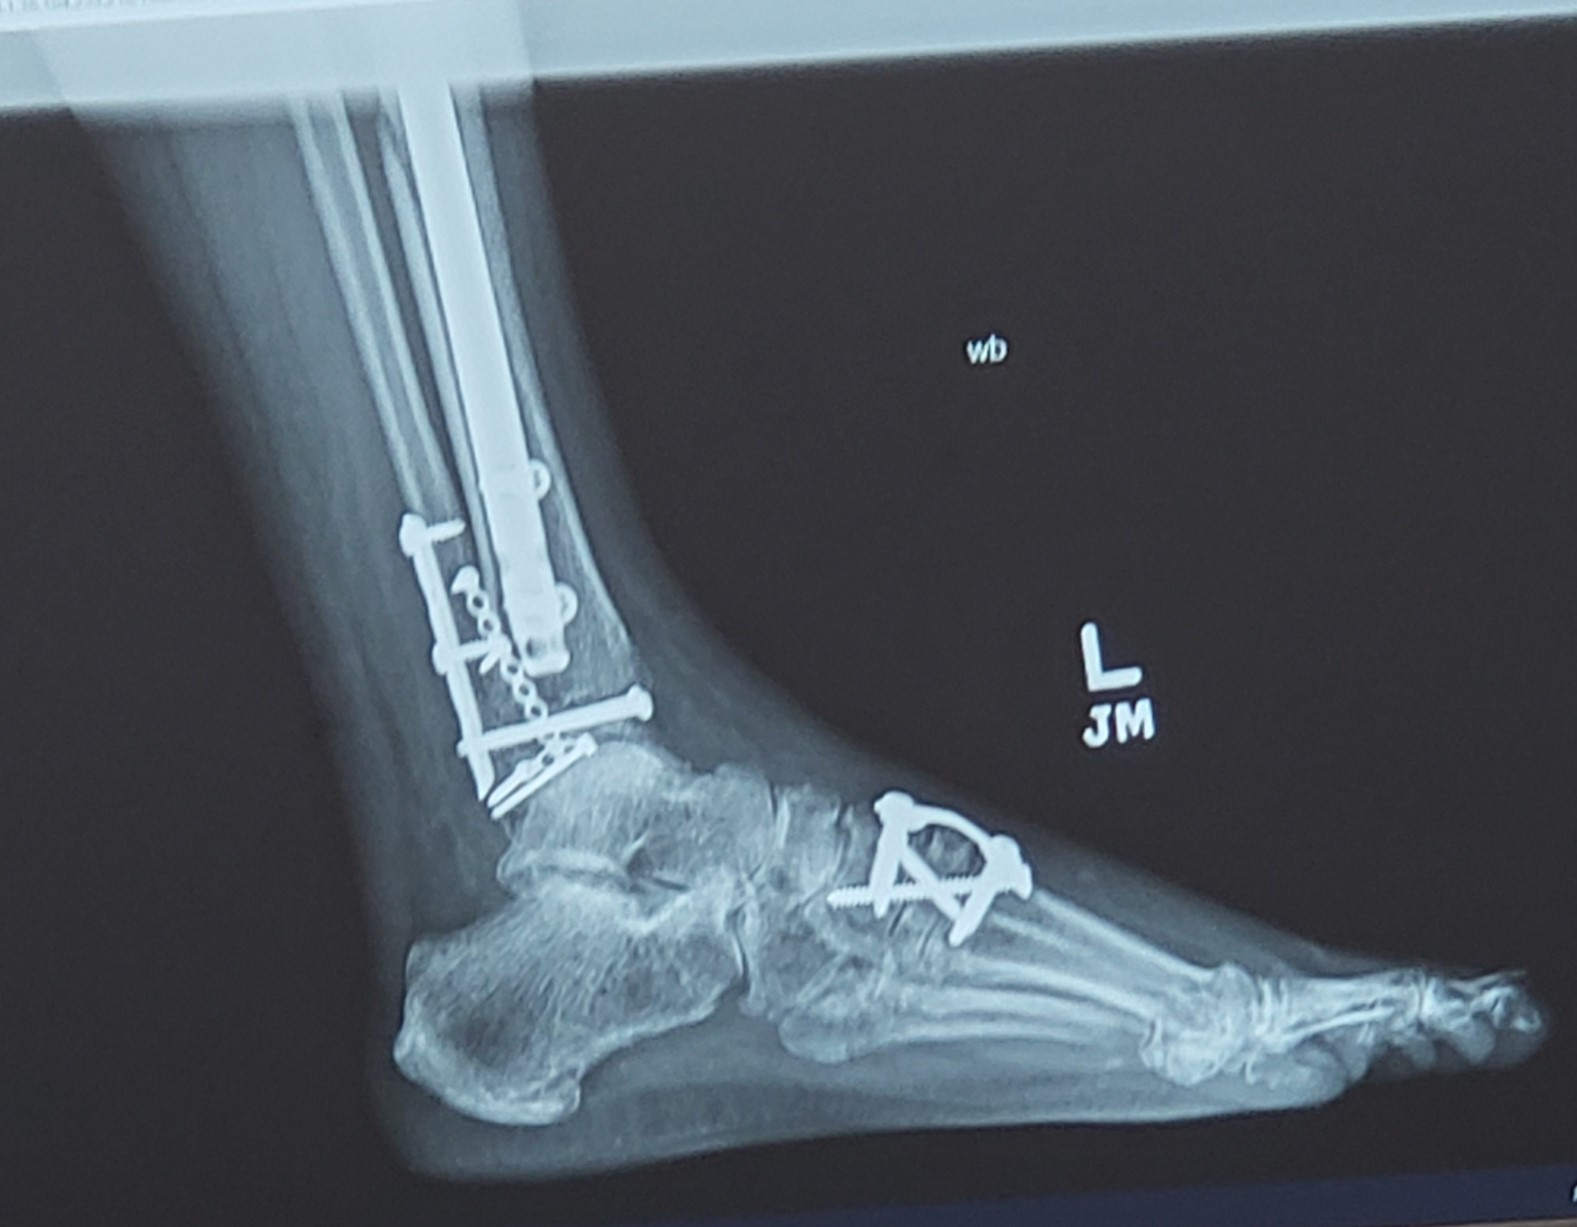 X-ray of patient's foot with screws and hardware